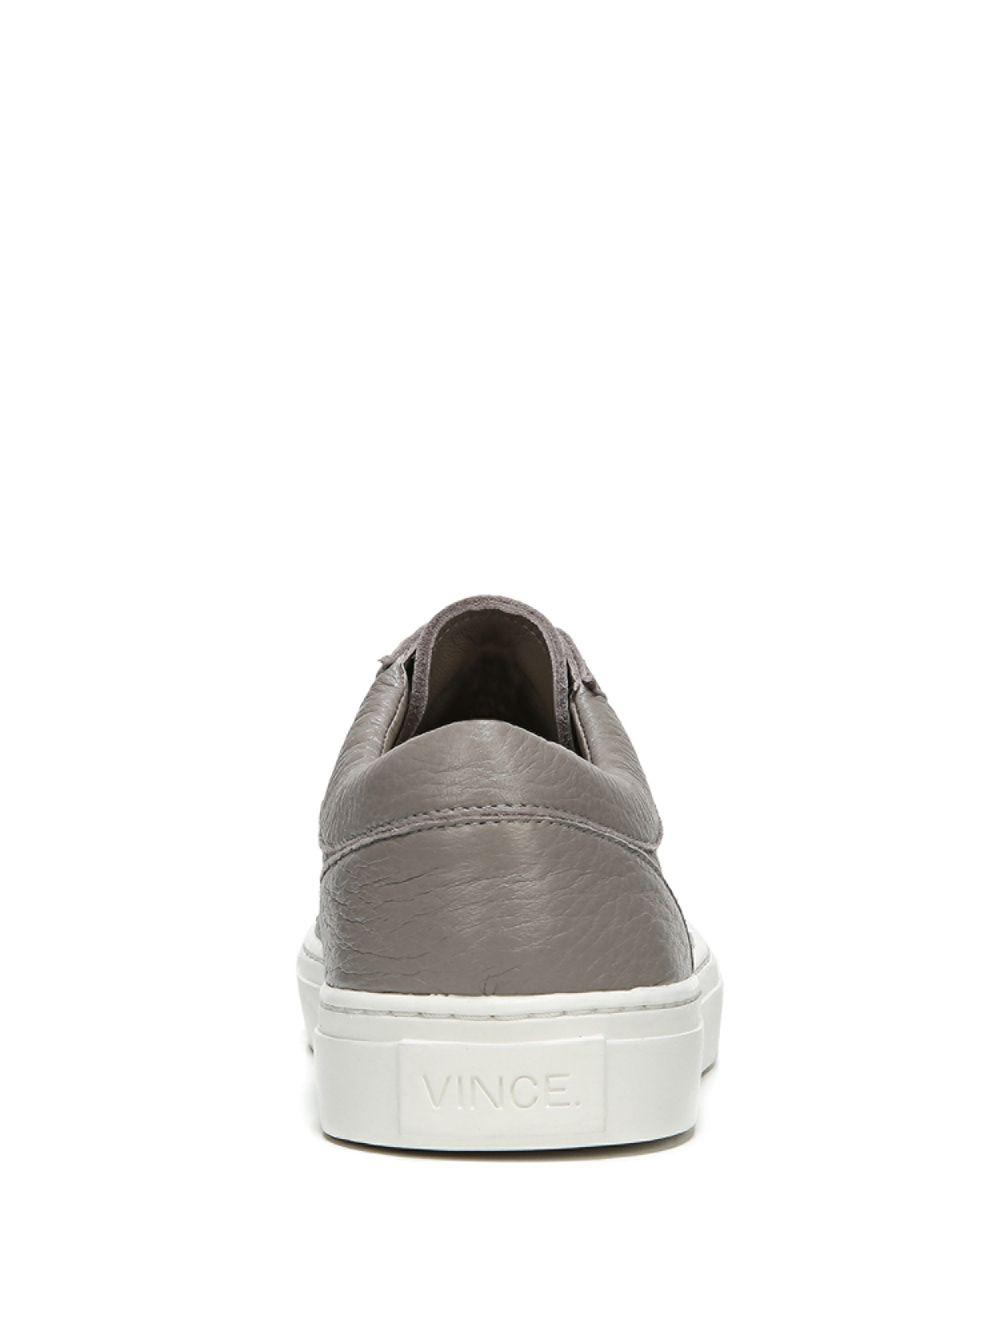 99fab1813c93 Lyst - Vince Afton-3 Leather Low-top Sneakers in Gray - Save 25%